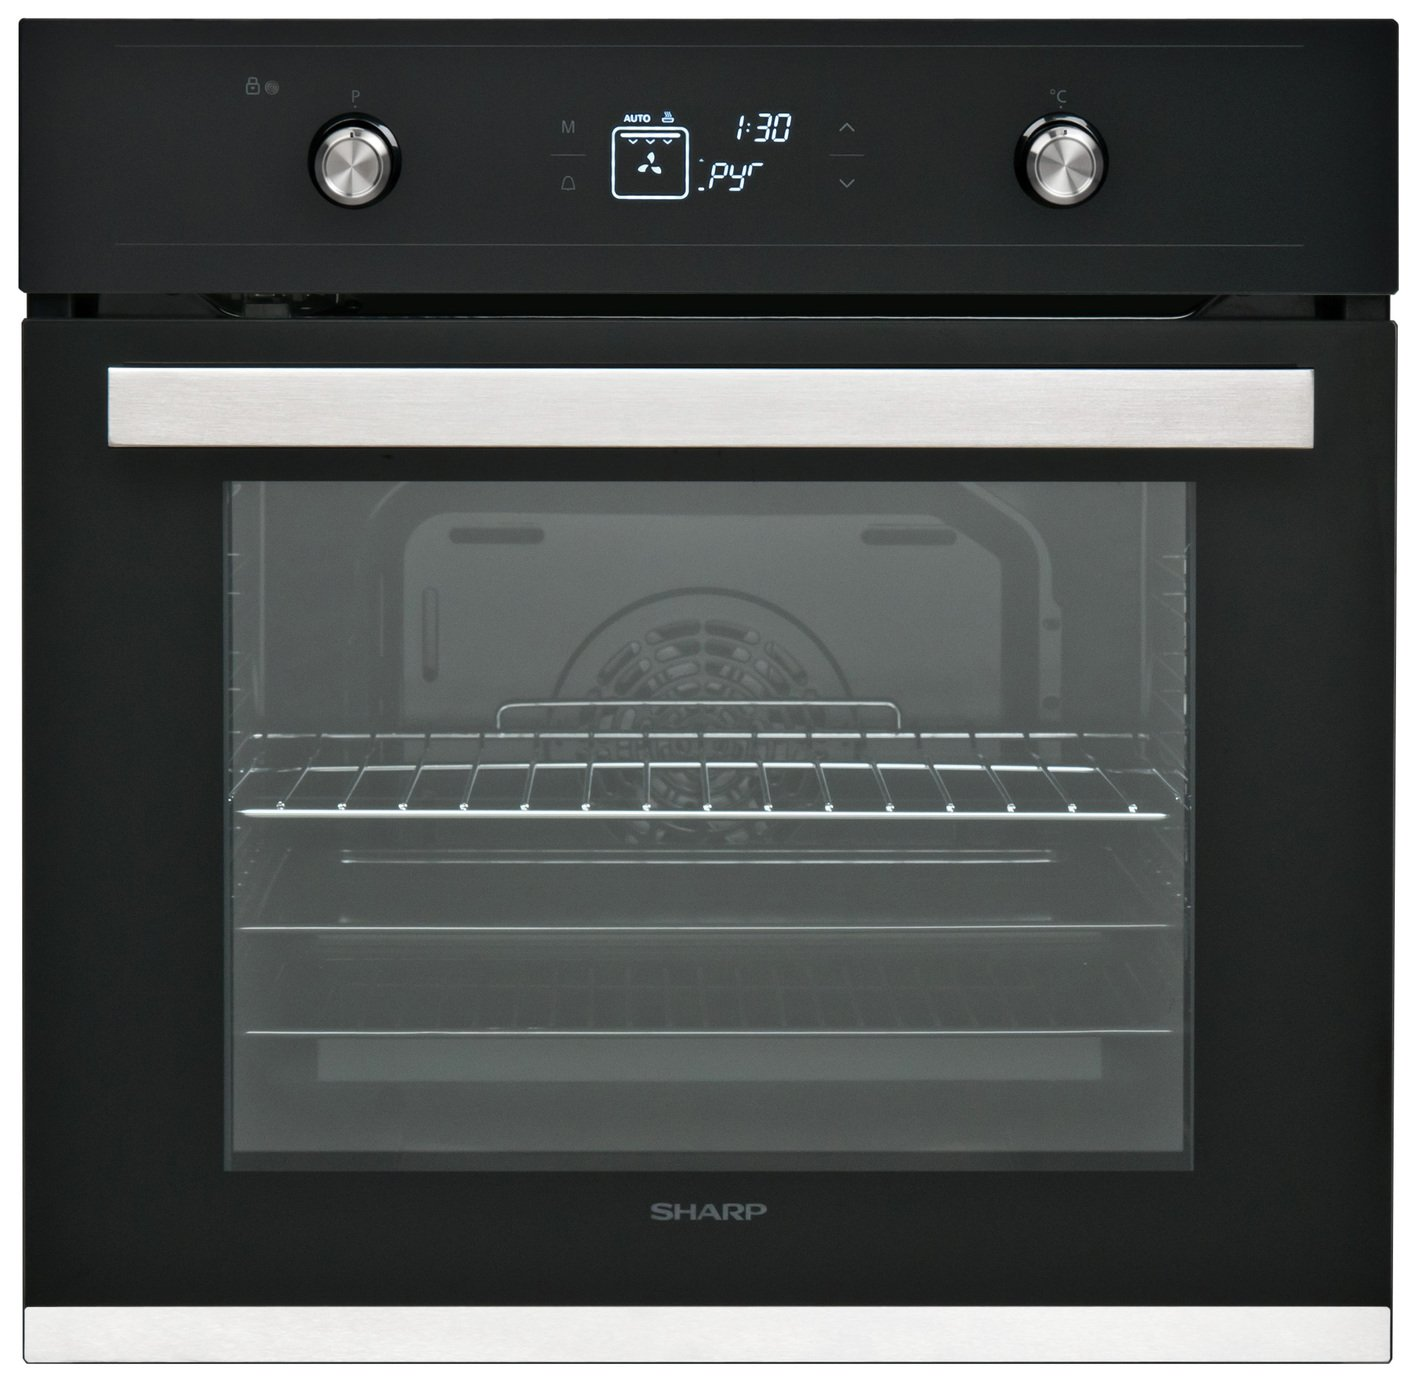 Sharp K-61V28IMI Built-In Single Electric Oven - Black